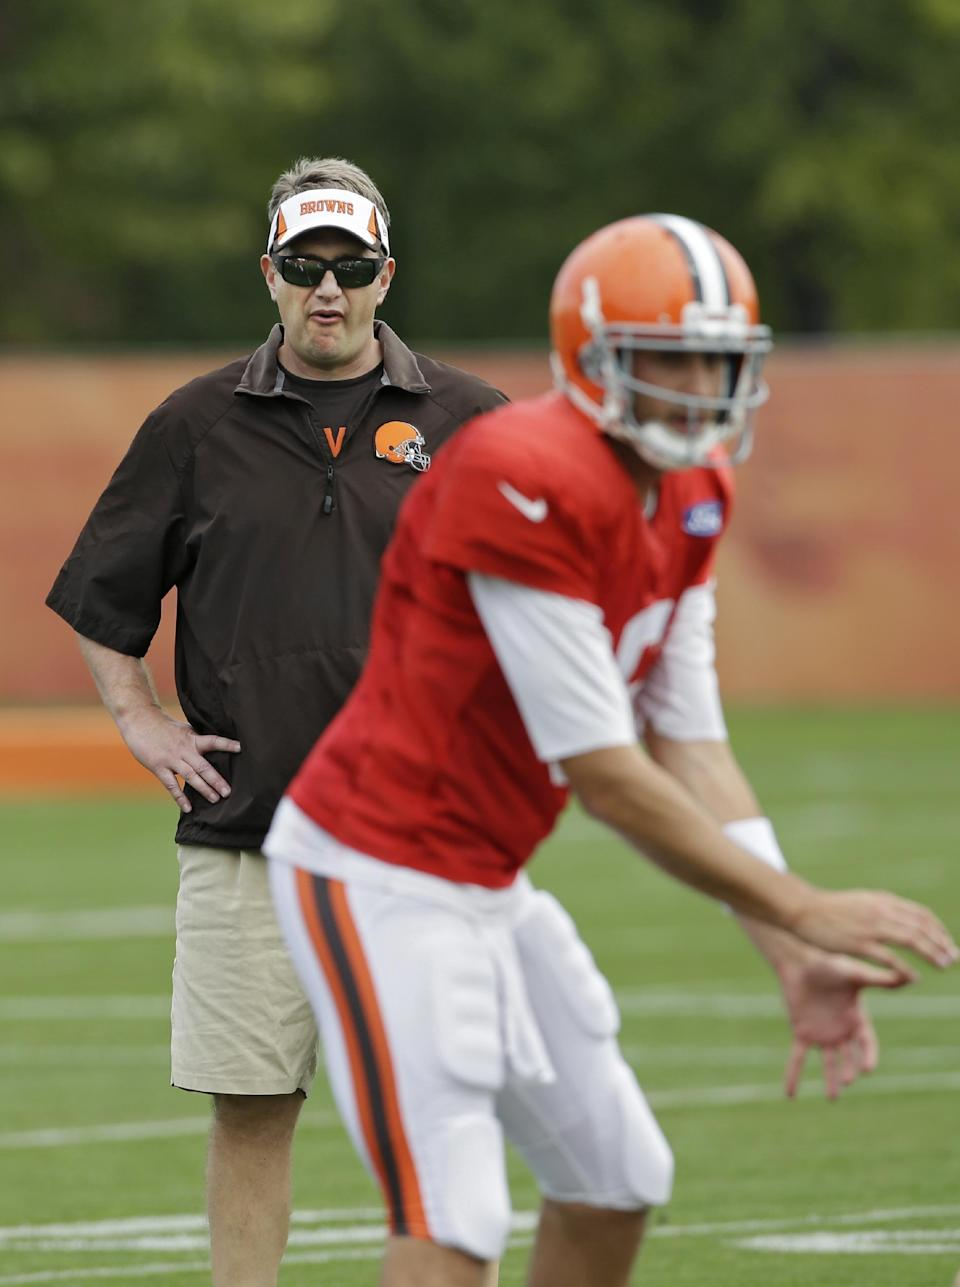 No. 3 is No. 1 for Browns, Hoyer to start at QB